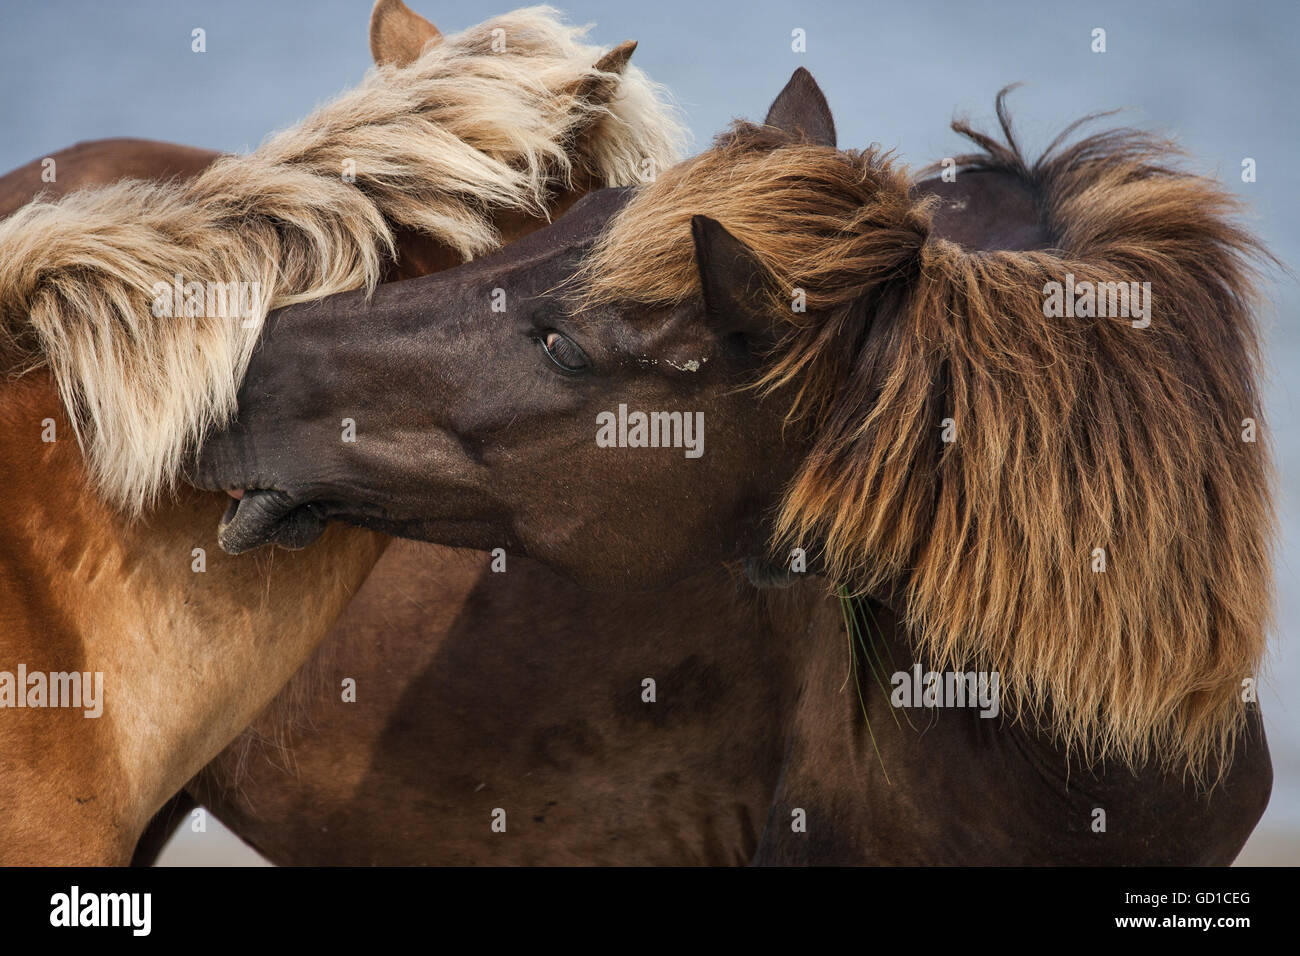 Two stallions battle over territory. - Stock Image